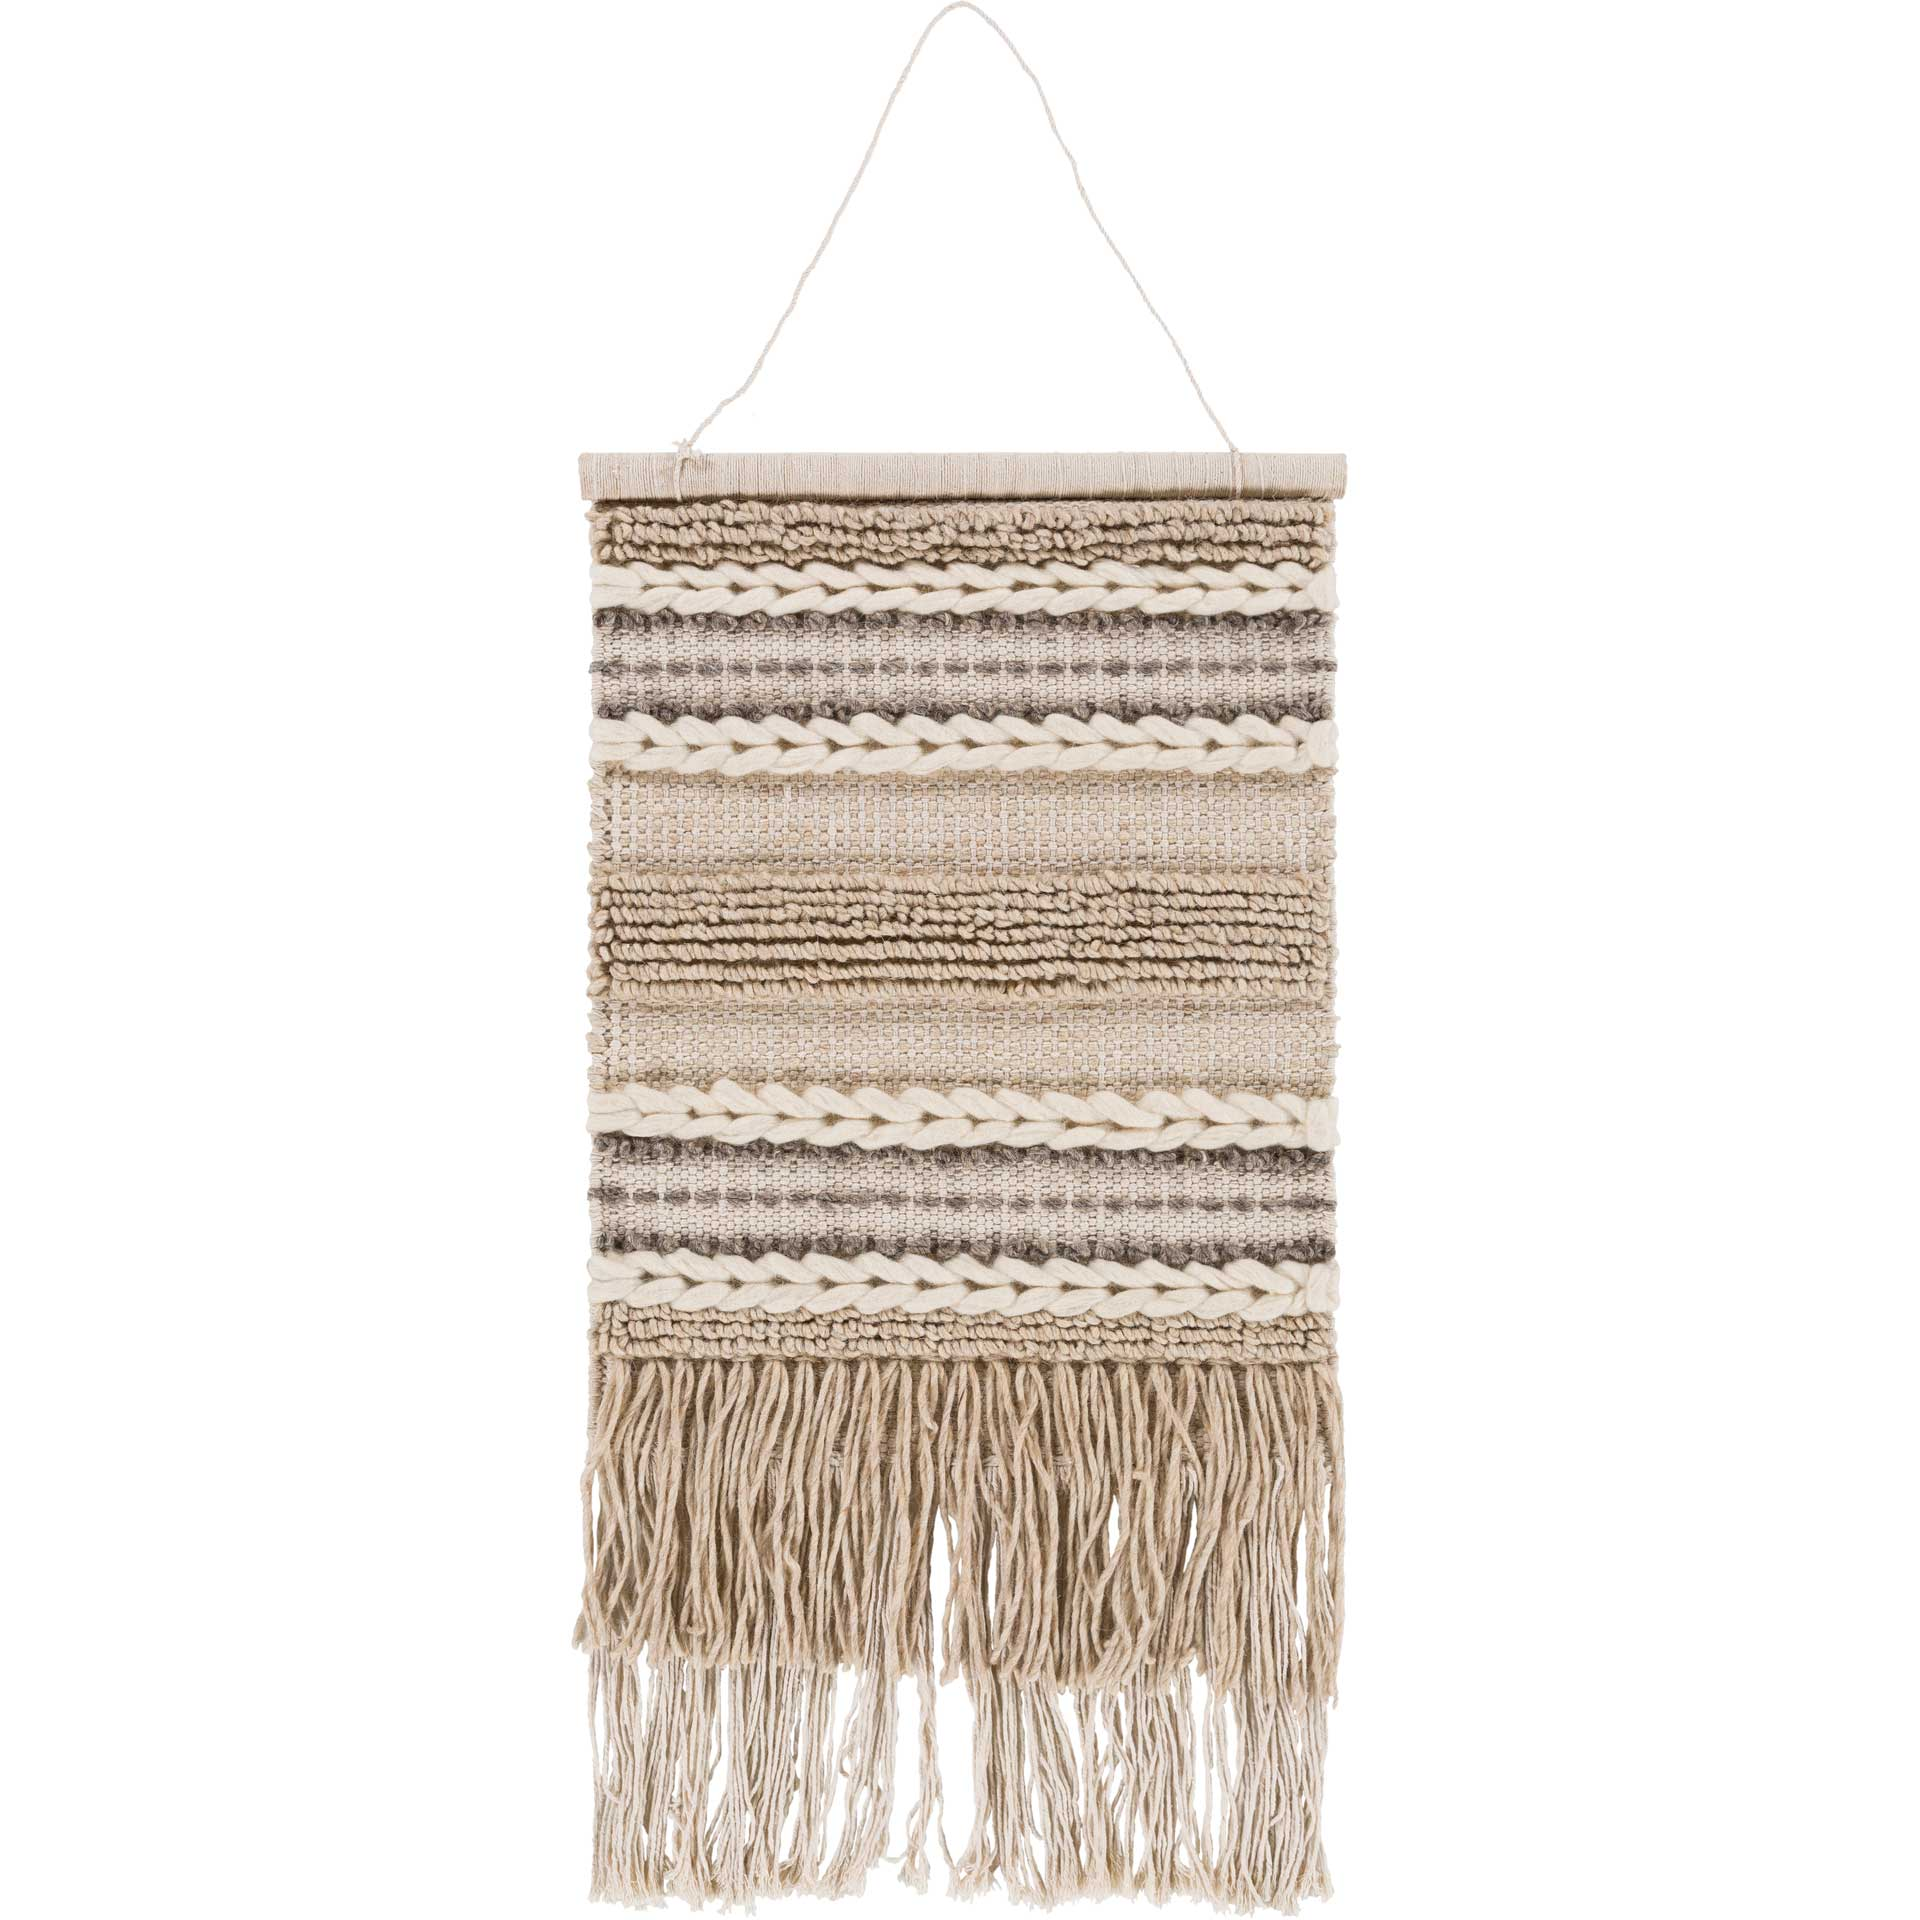 Addison Wall Hanging Khaki/Cream/Beige